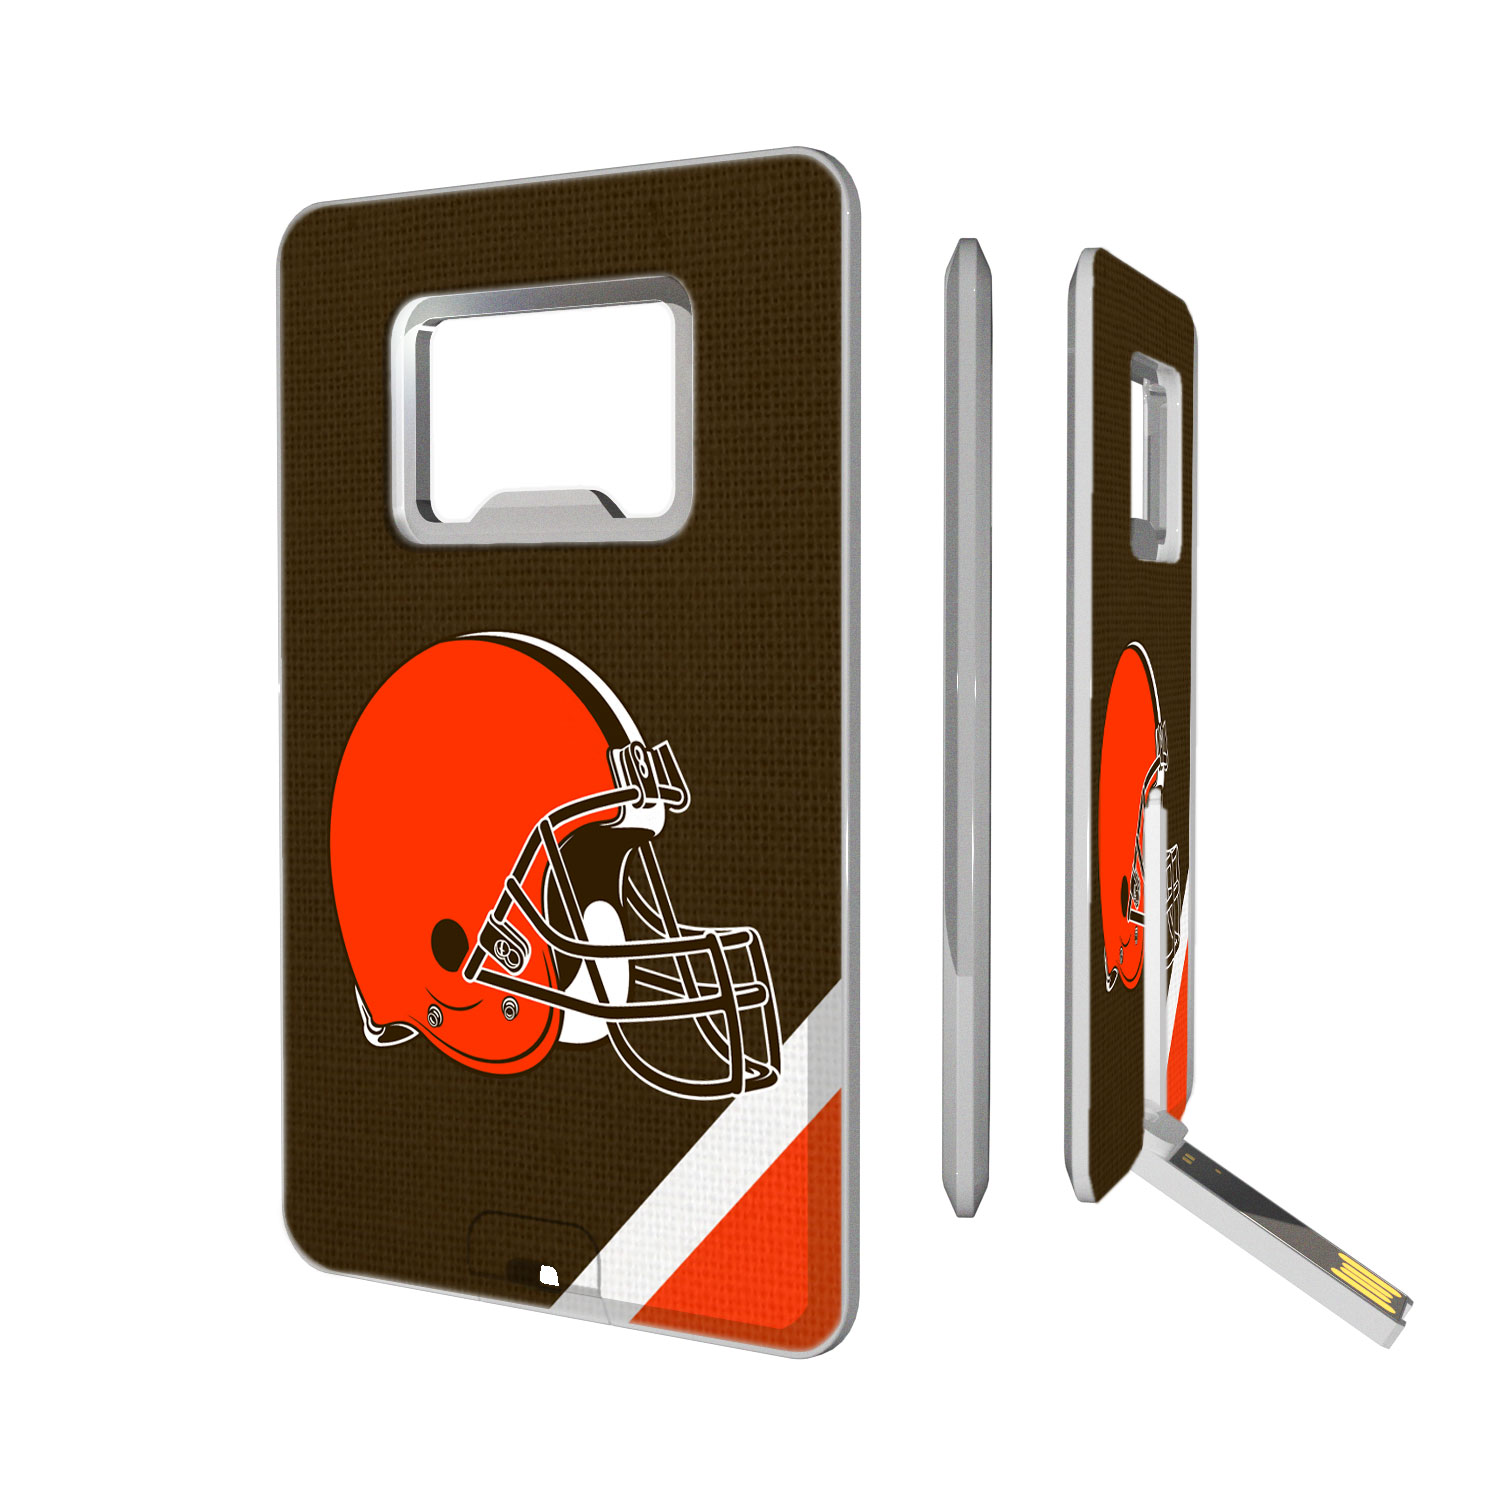 Cleveland Browns Diagonal Stripe Credit Card USB Drive & Bottle Opener